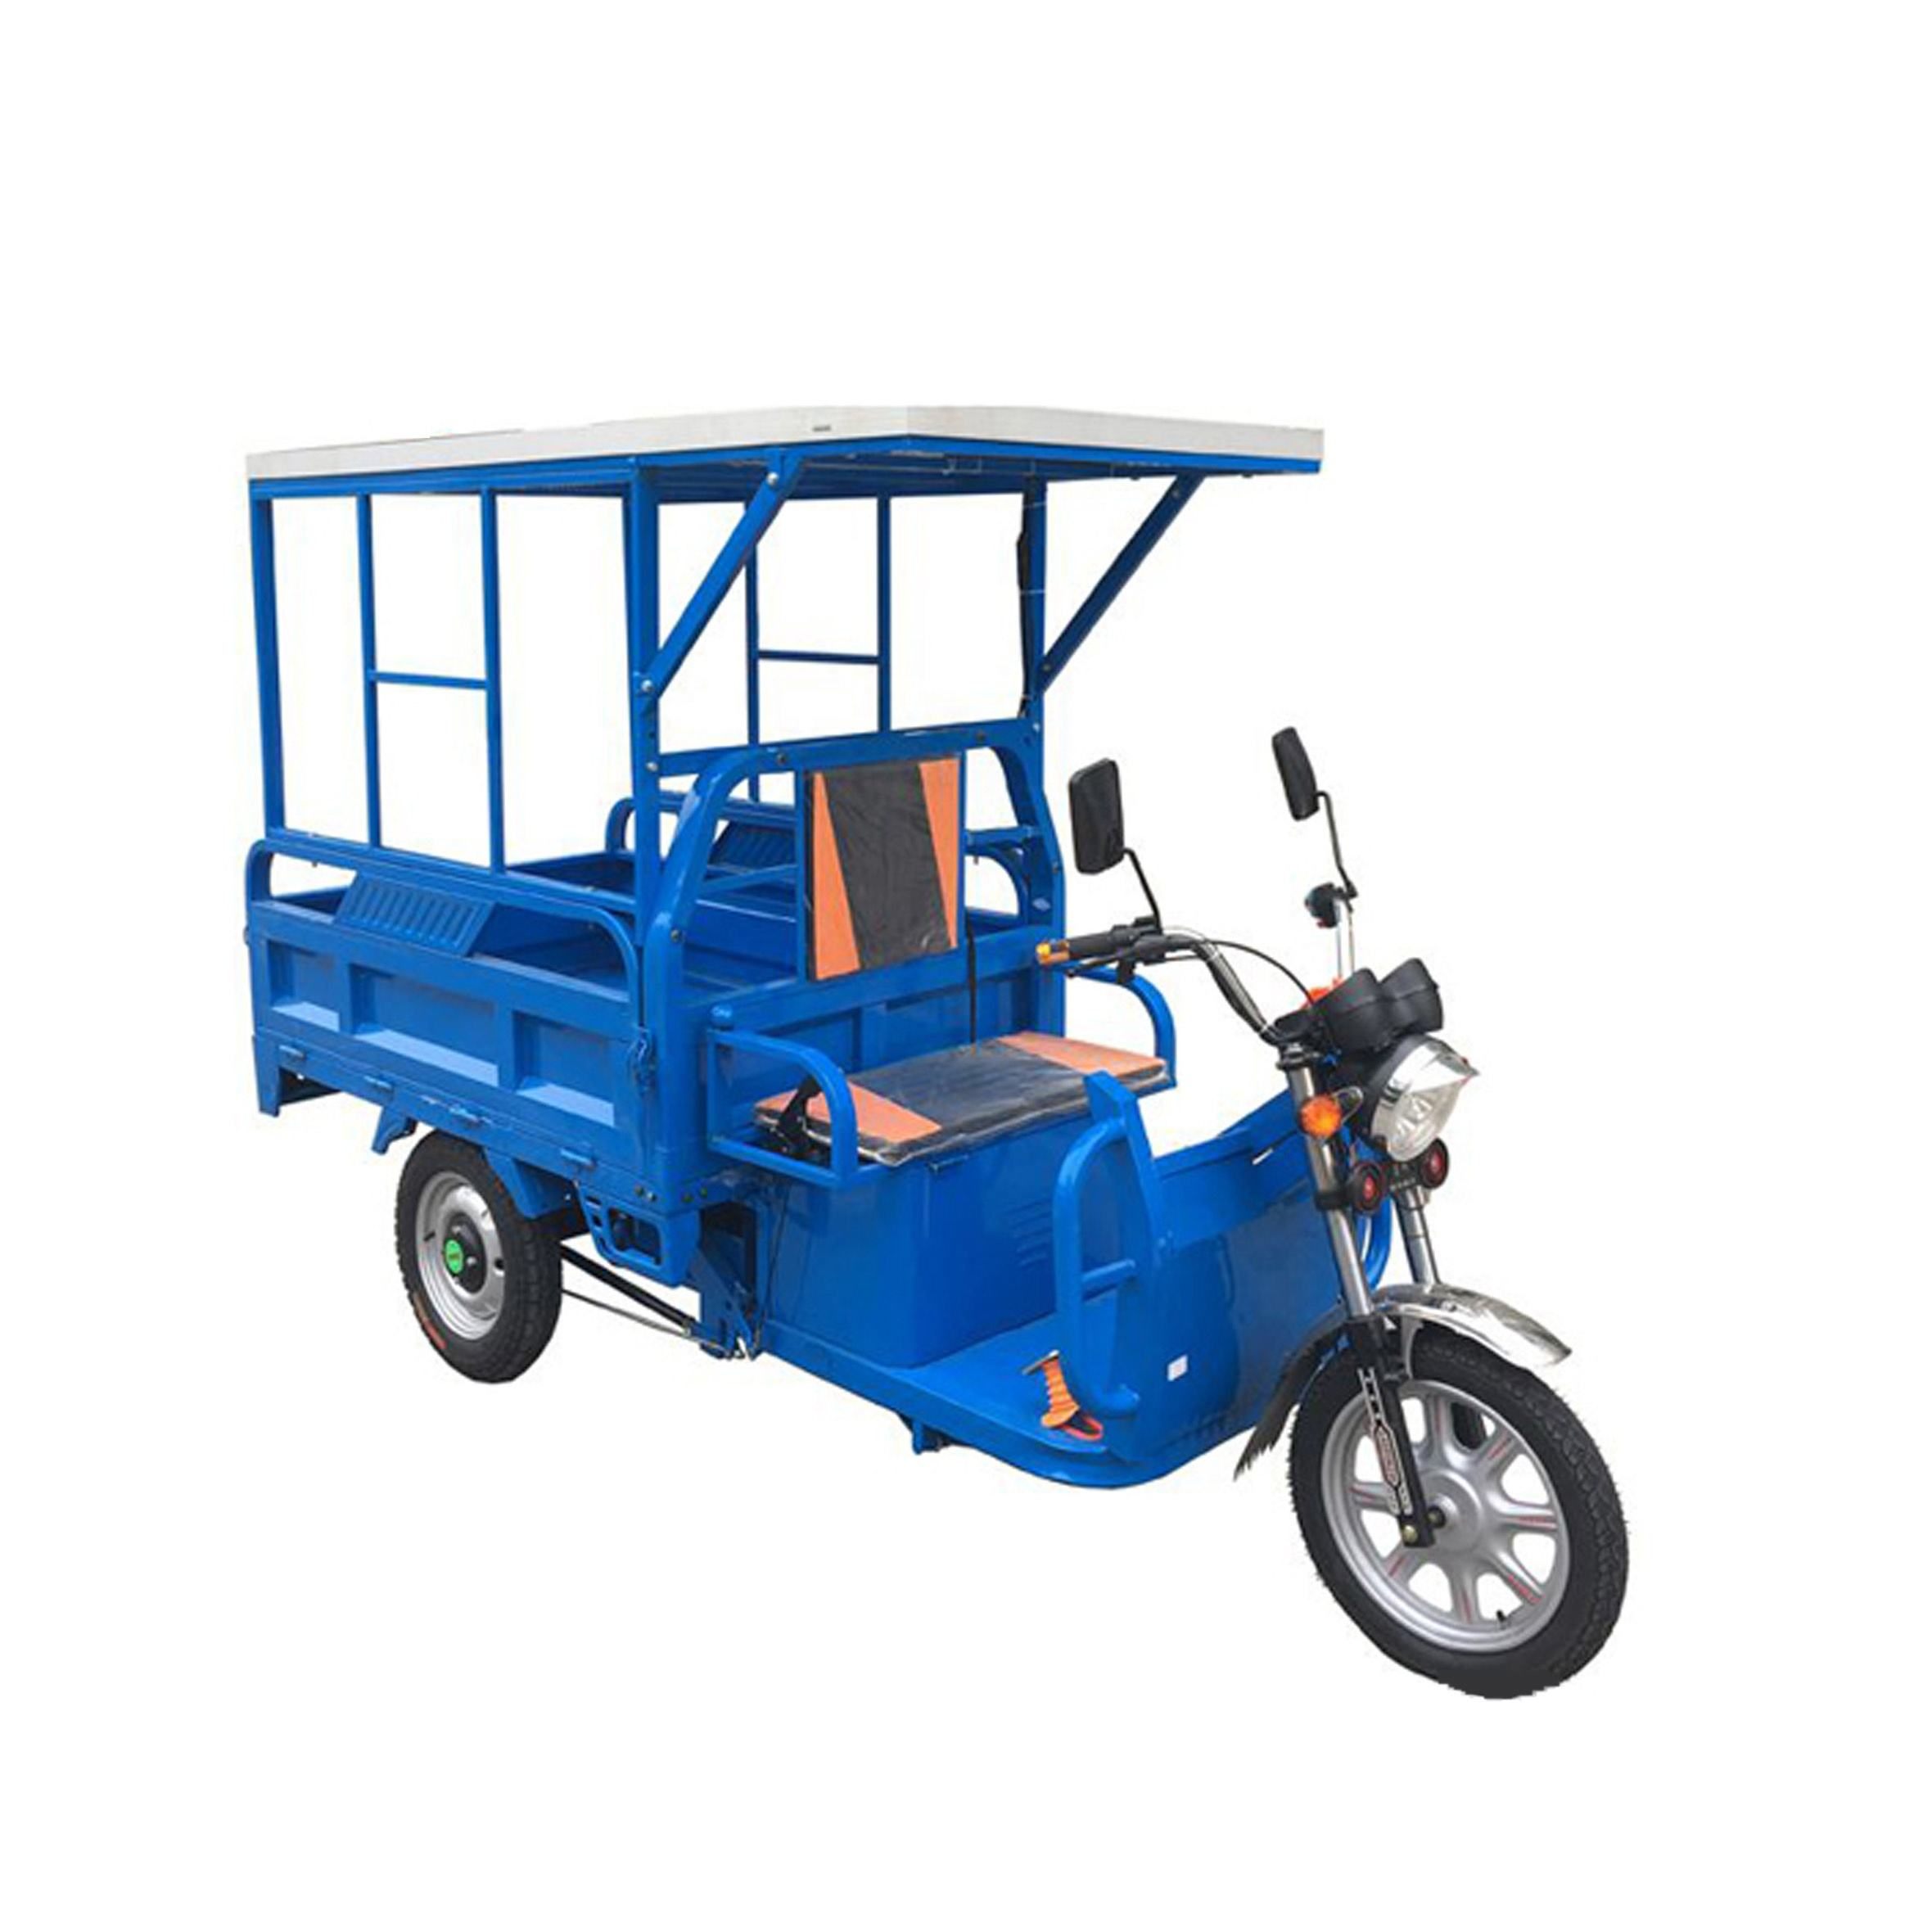 Guangzhou cargo use three wheeltuk tuk battery optional moped electric scooter tricycle for sale